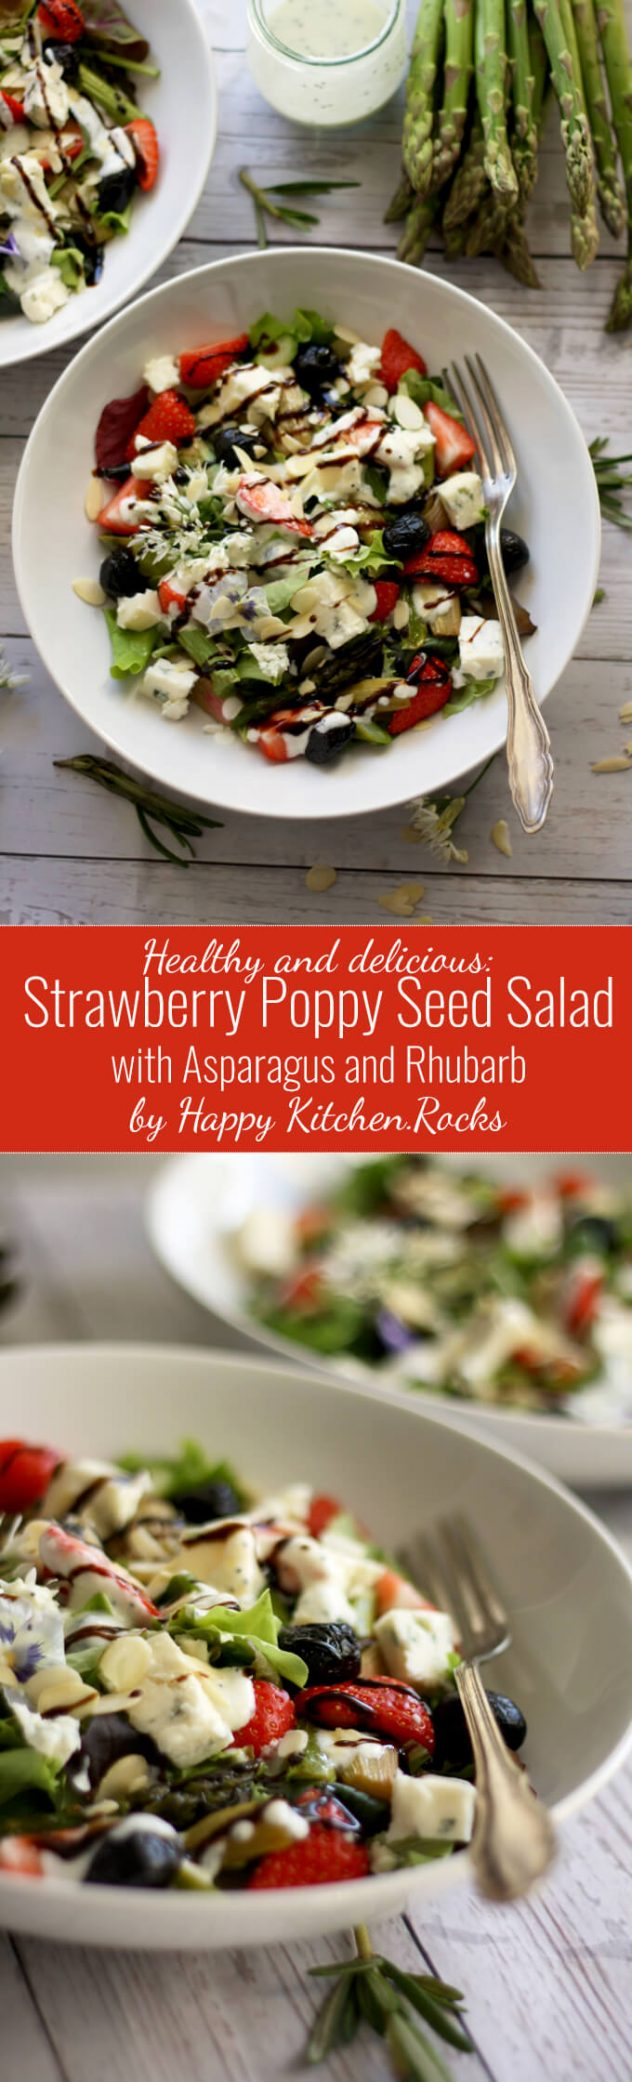 Spring Strawberry Poppy Seed Salad with roasted asparagus, rhubarb, gorgonzola cheese, olives and almonds is incredibly delicious, healthy and takes no more than 30 minutes to make! Perfect for light lunch! Low carb and vegetarian.